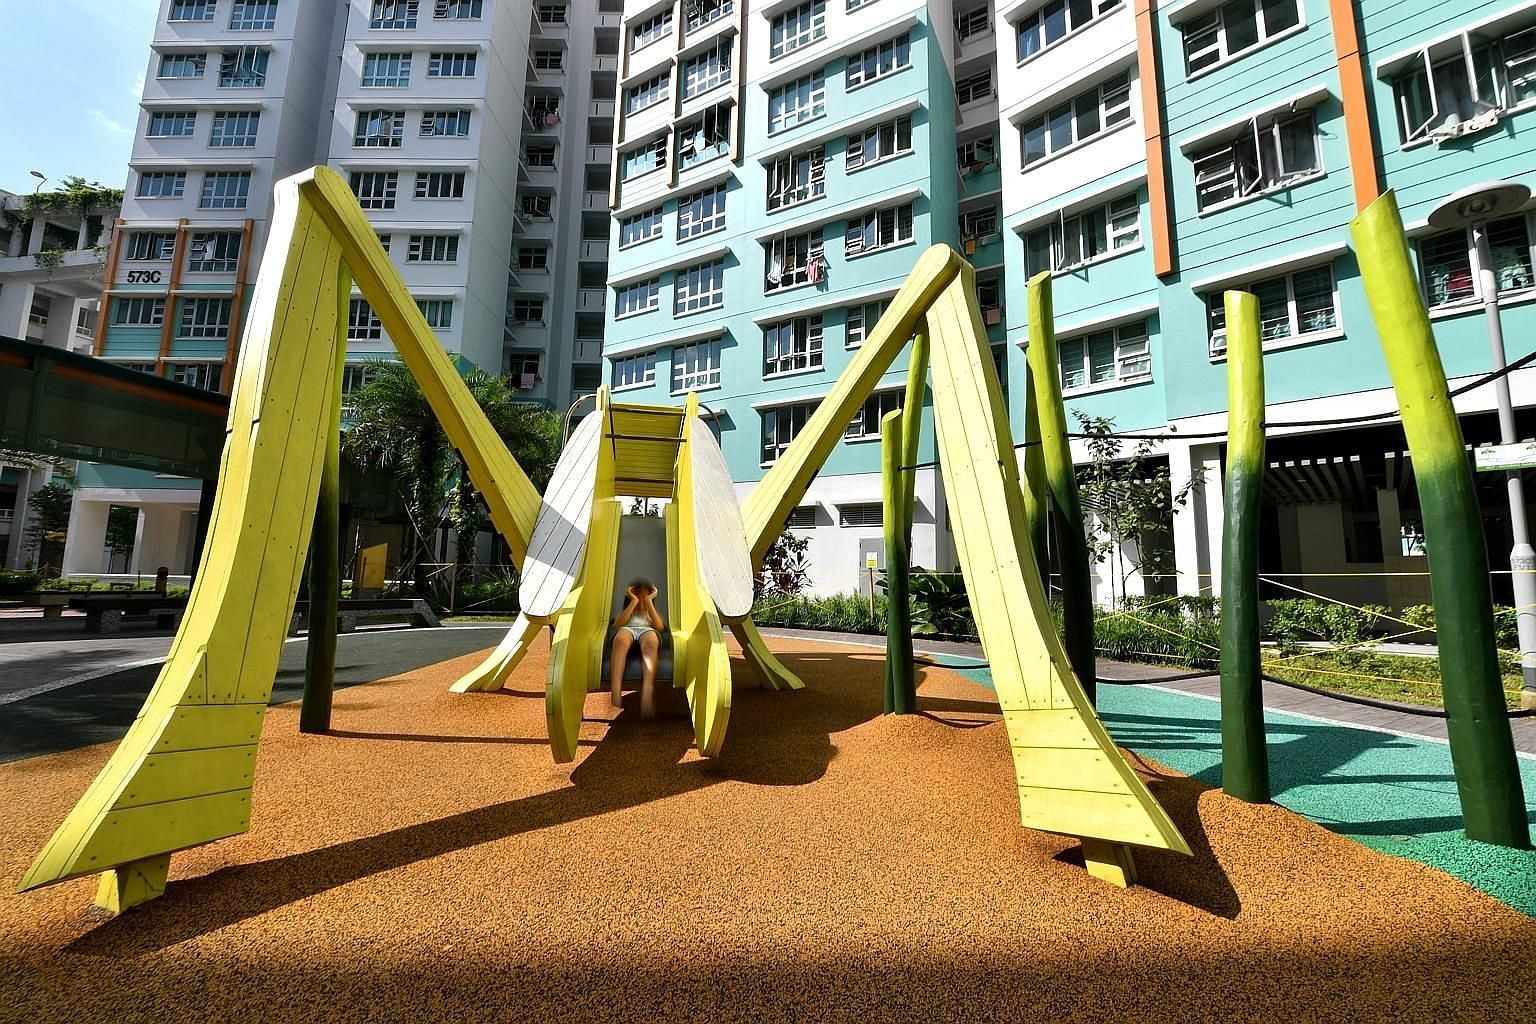 A dragon-styled playground at Yishun Neighbourhood 7 in the mid-1970s to late 1980s. A play structure in Queenstown estate in 1965. Military camps once occupied the sites where HDB precincts Keat Hong Mirage and Keat Hong Quad, and the neighbourhood